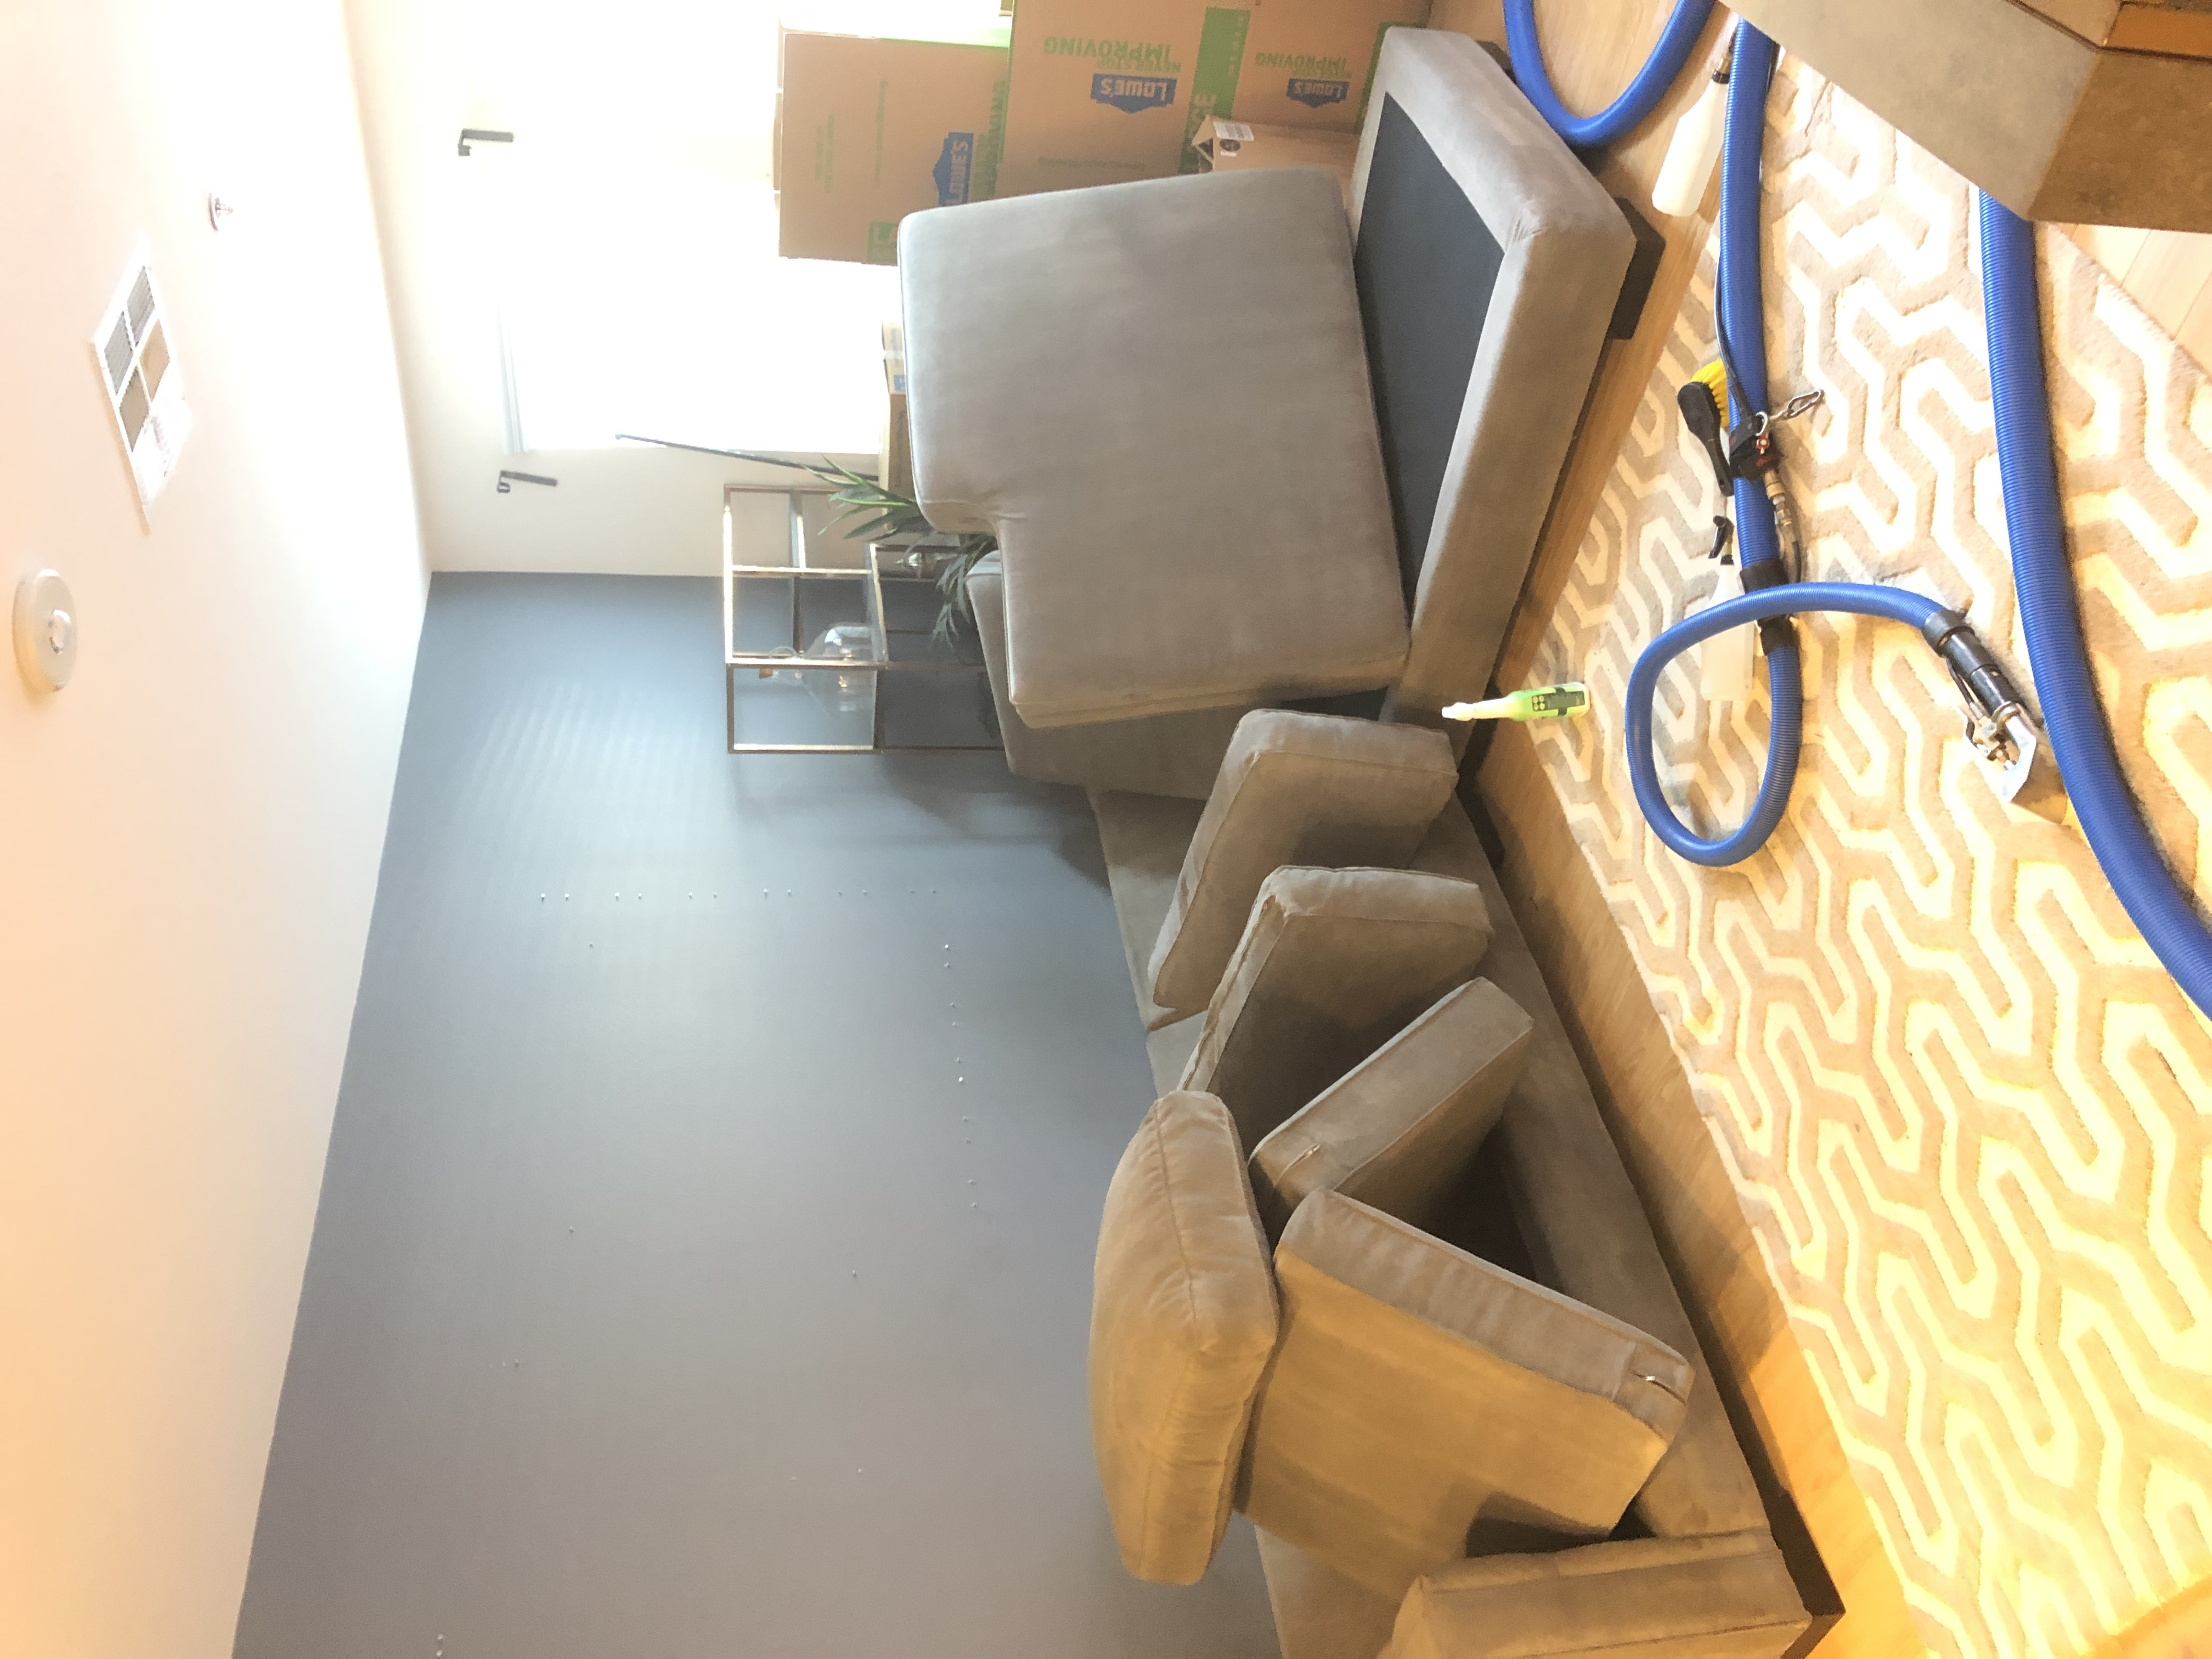 Greenside Carpet Cleaning Amp Airducts Inc In Mission Viejo